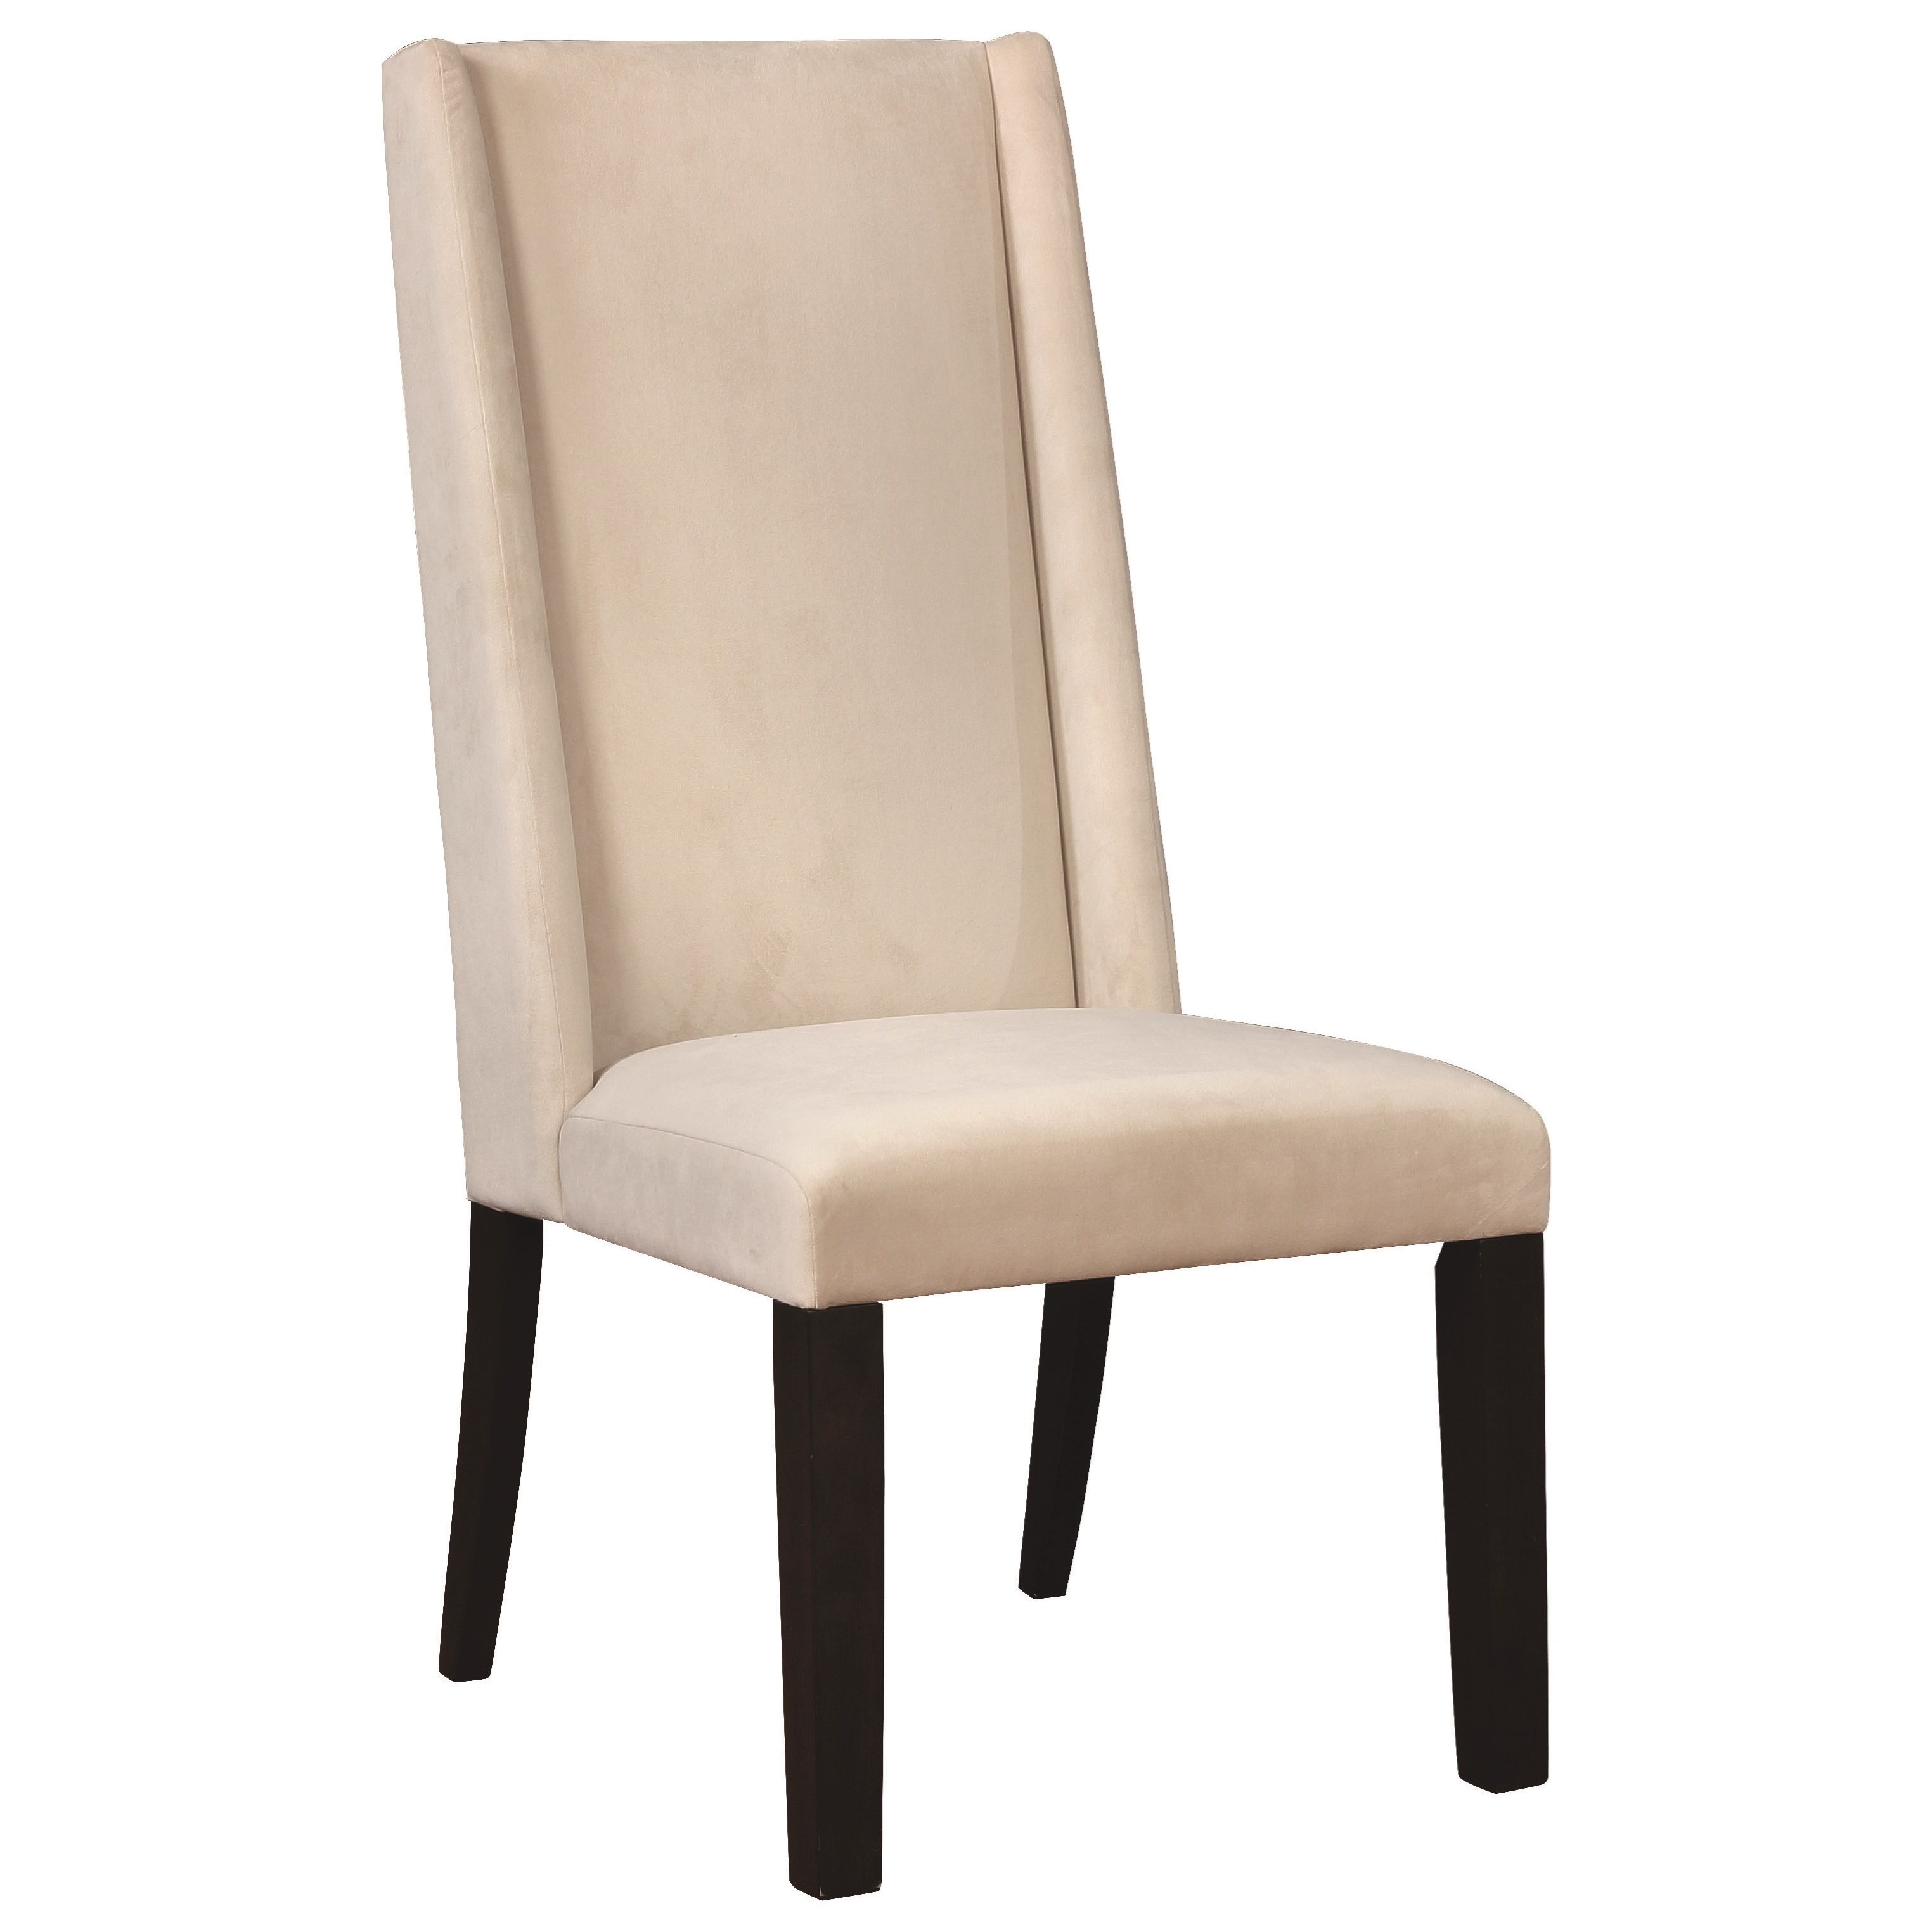 Scott Living 10312 Parson Chair - Item Number: 103129